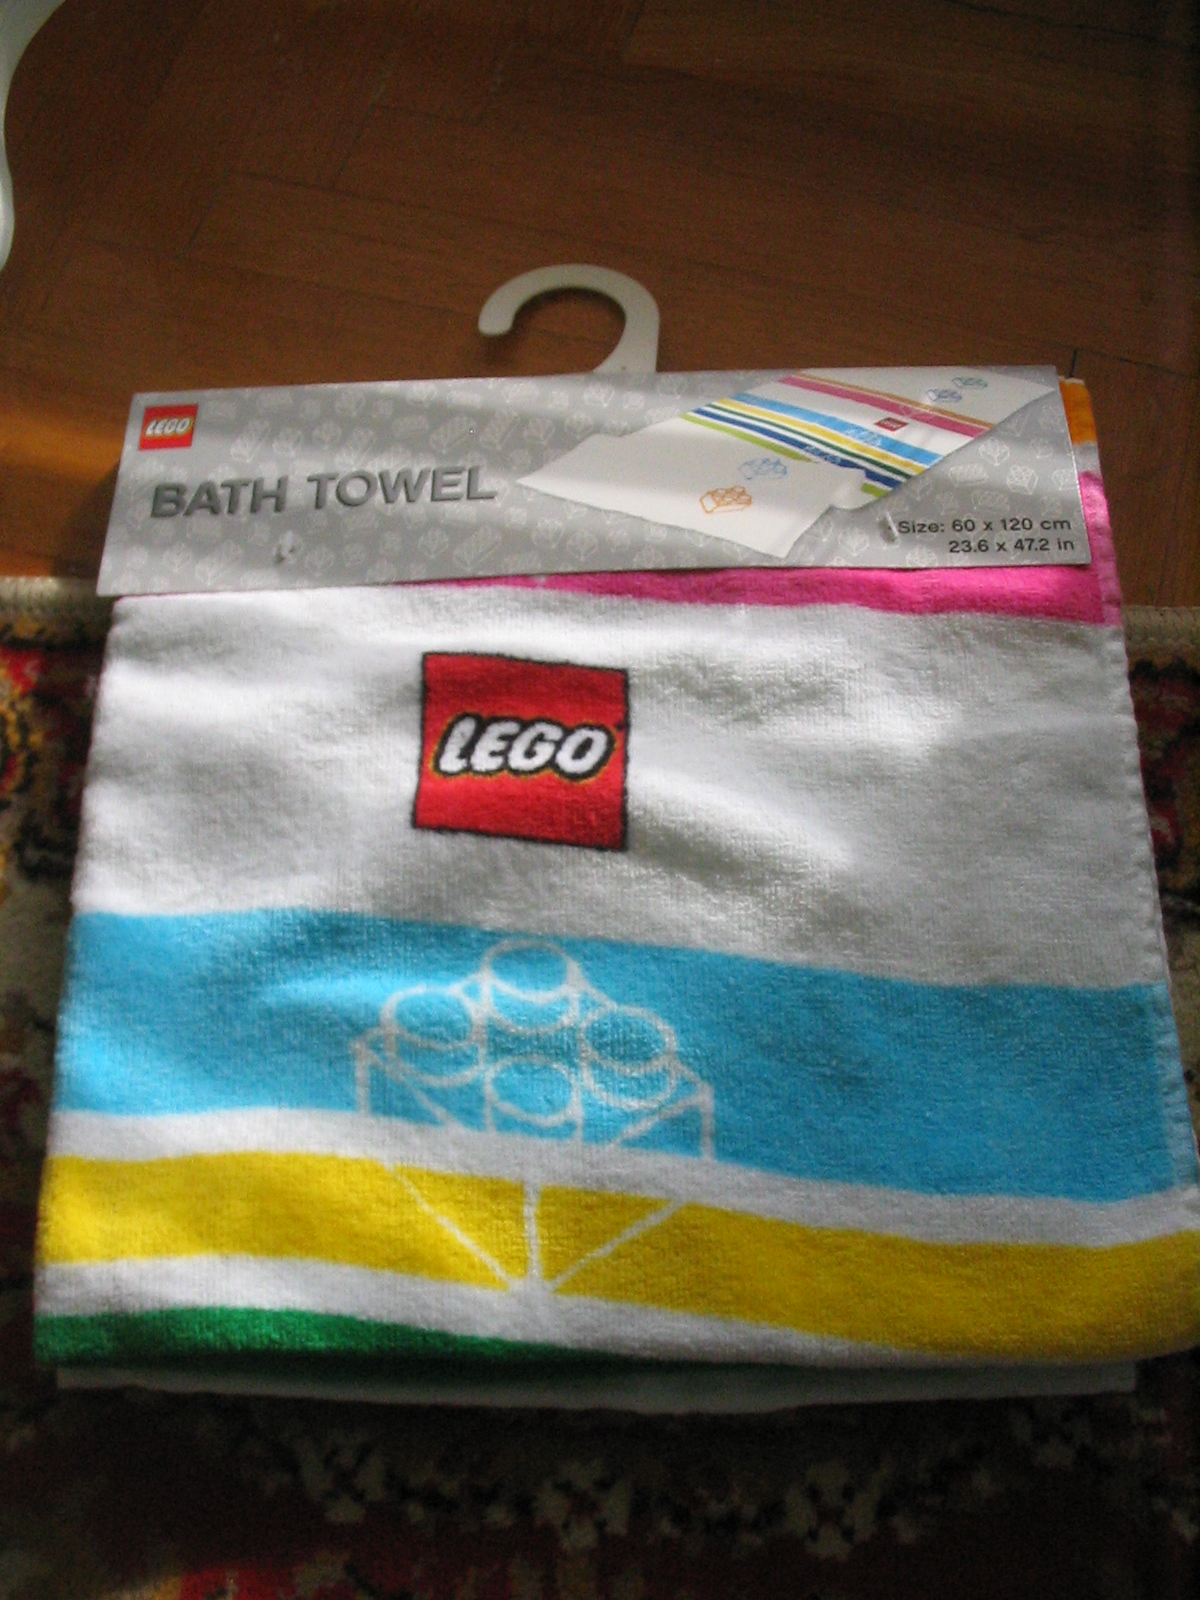 bath_towel.jpg